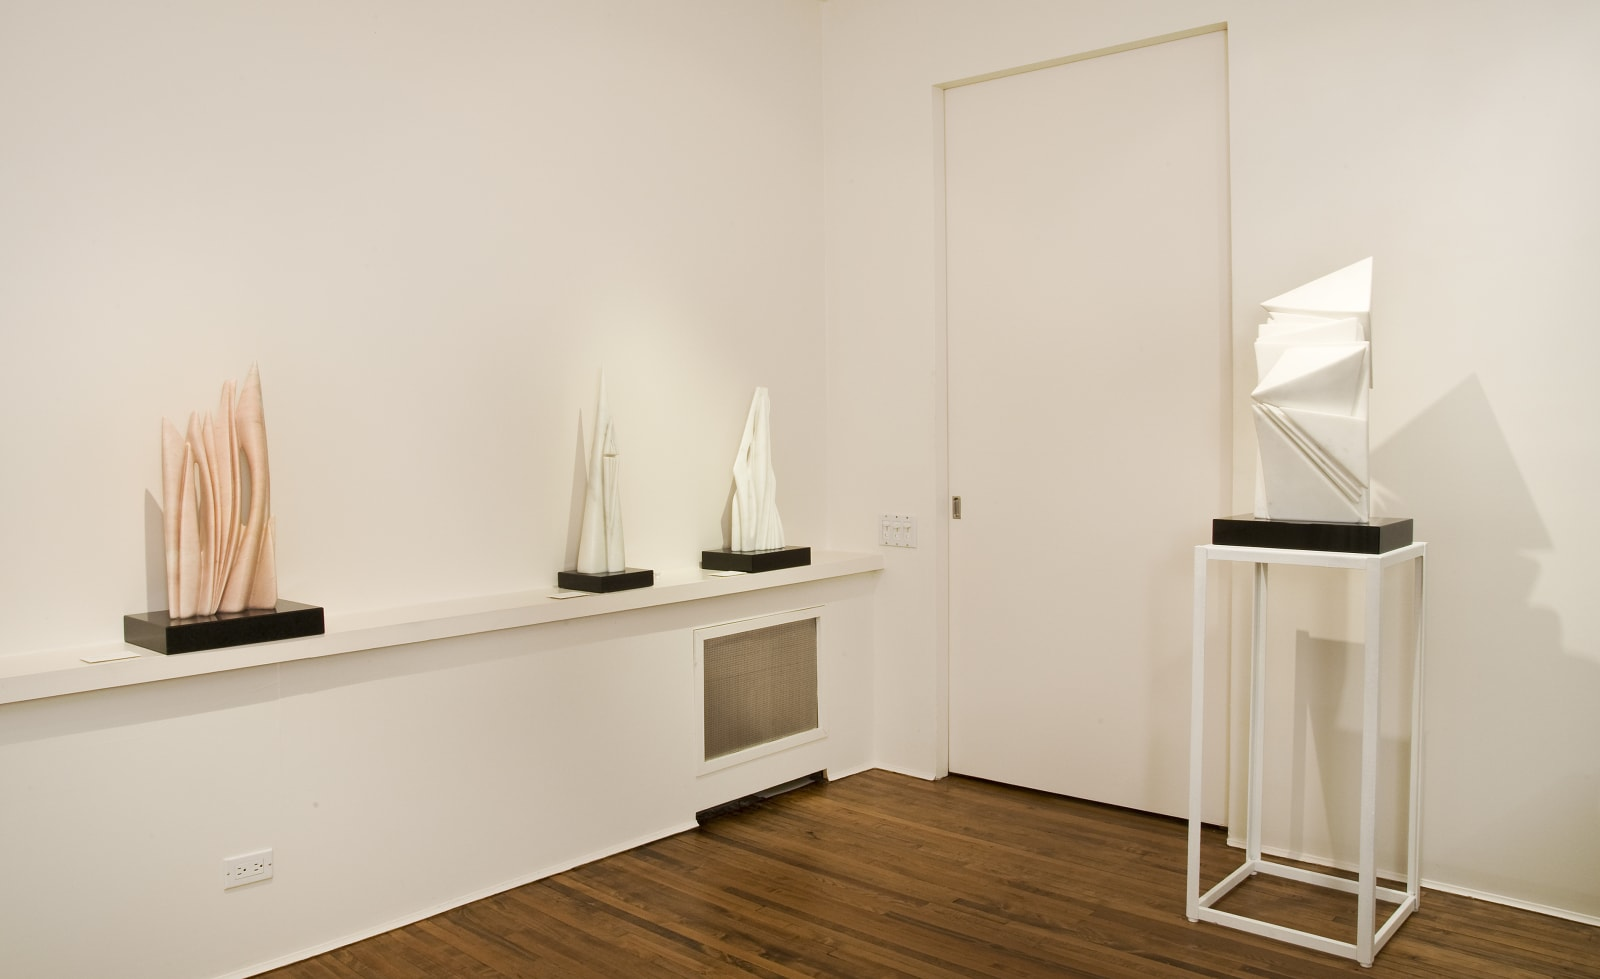 Installation view: Pablo Atchugarry: Heroic Activities